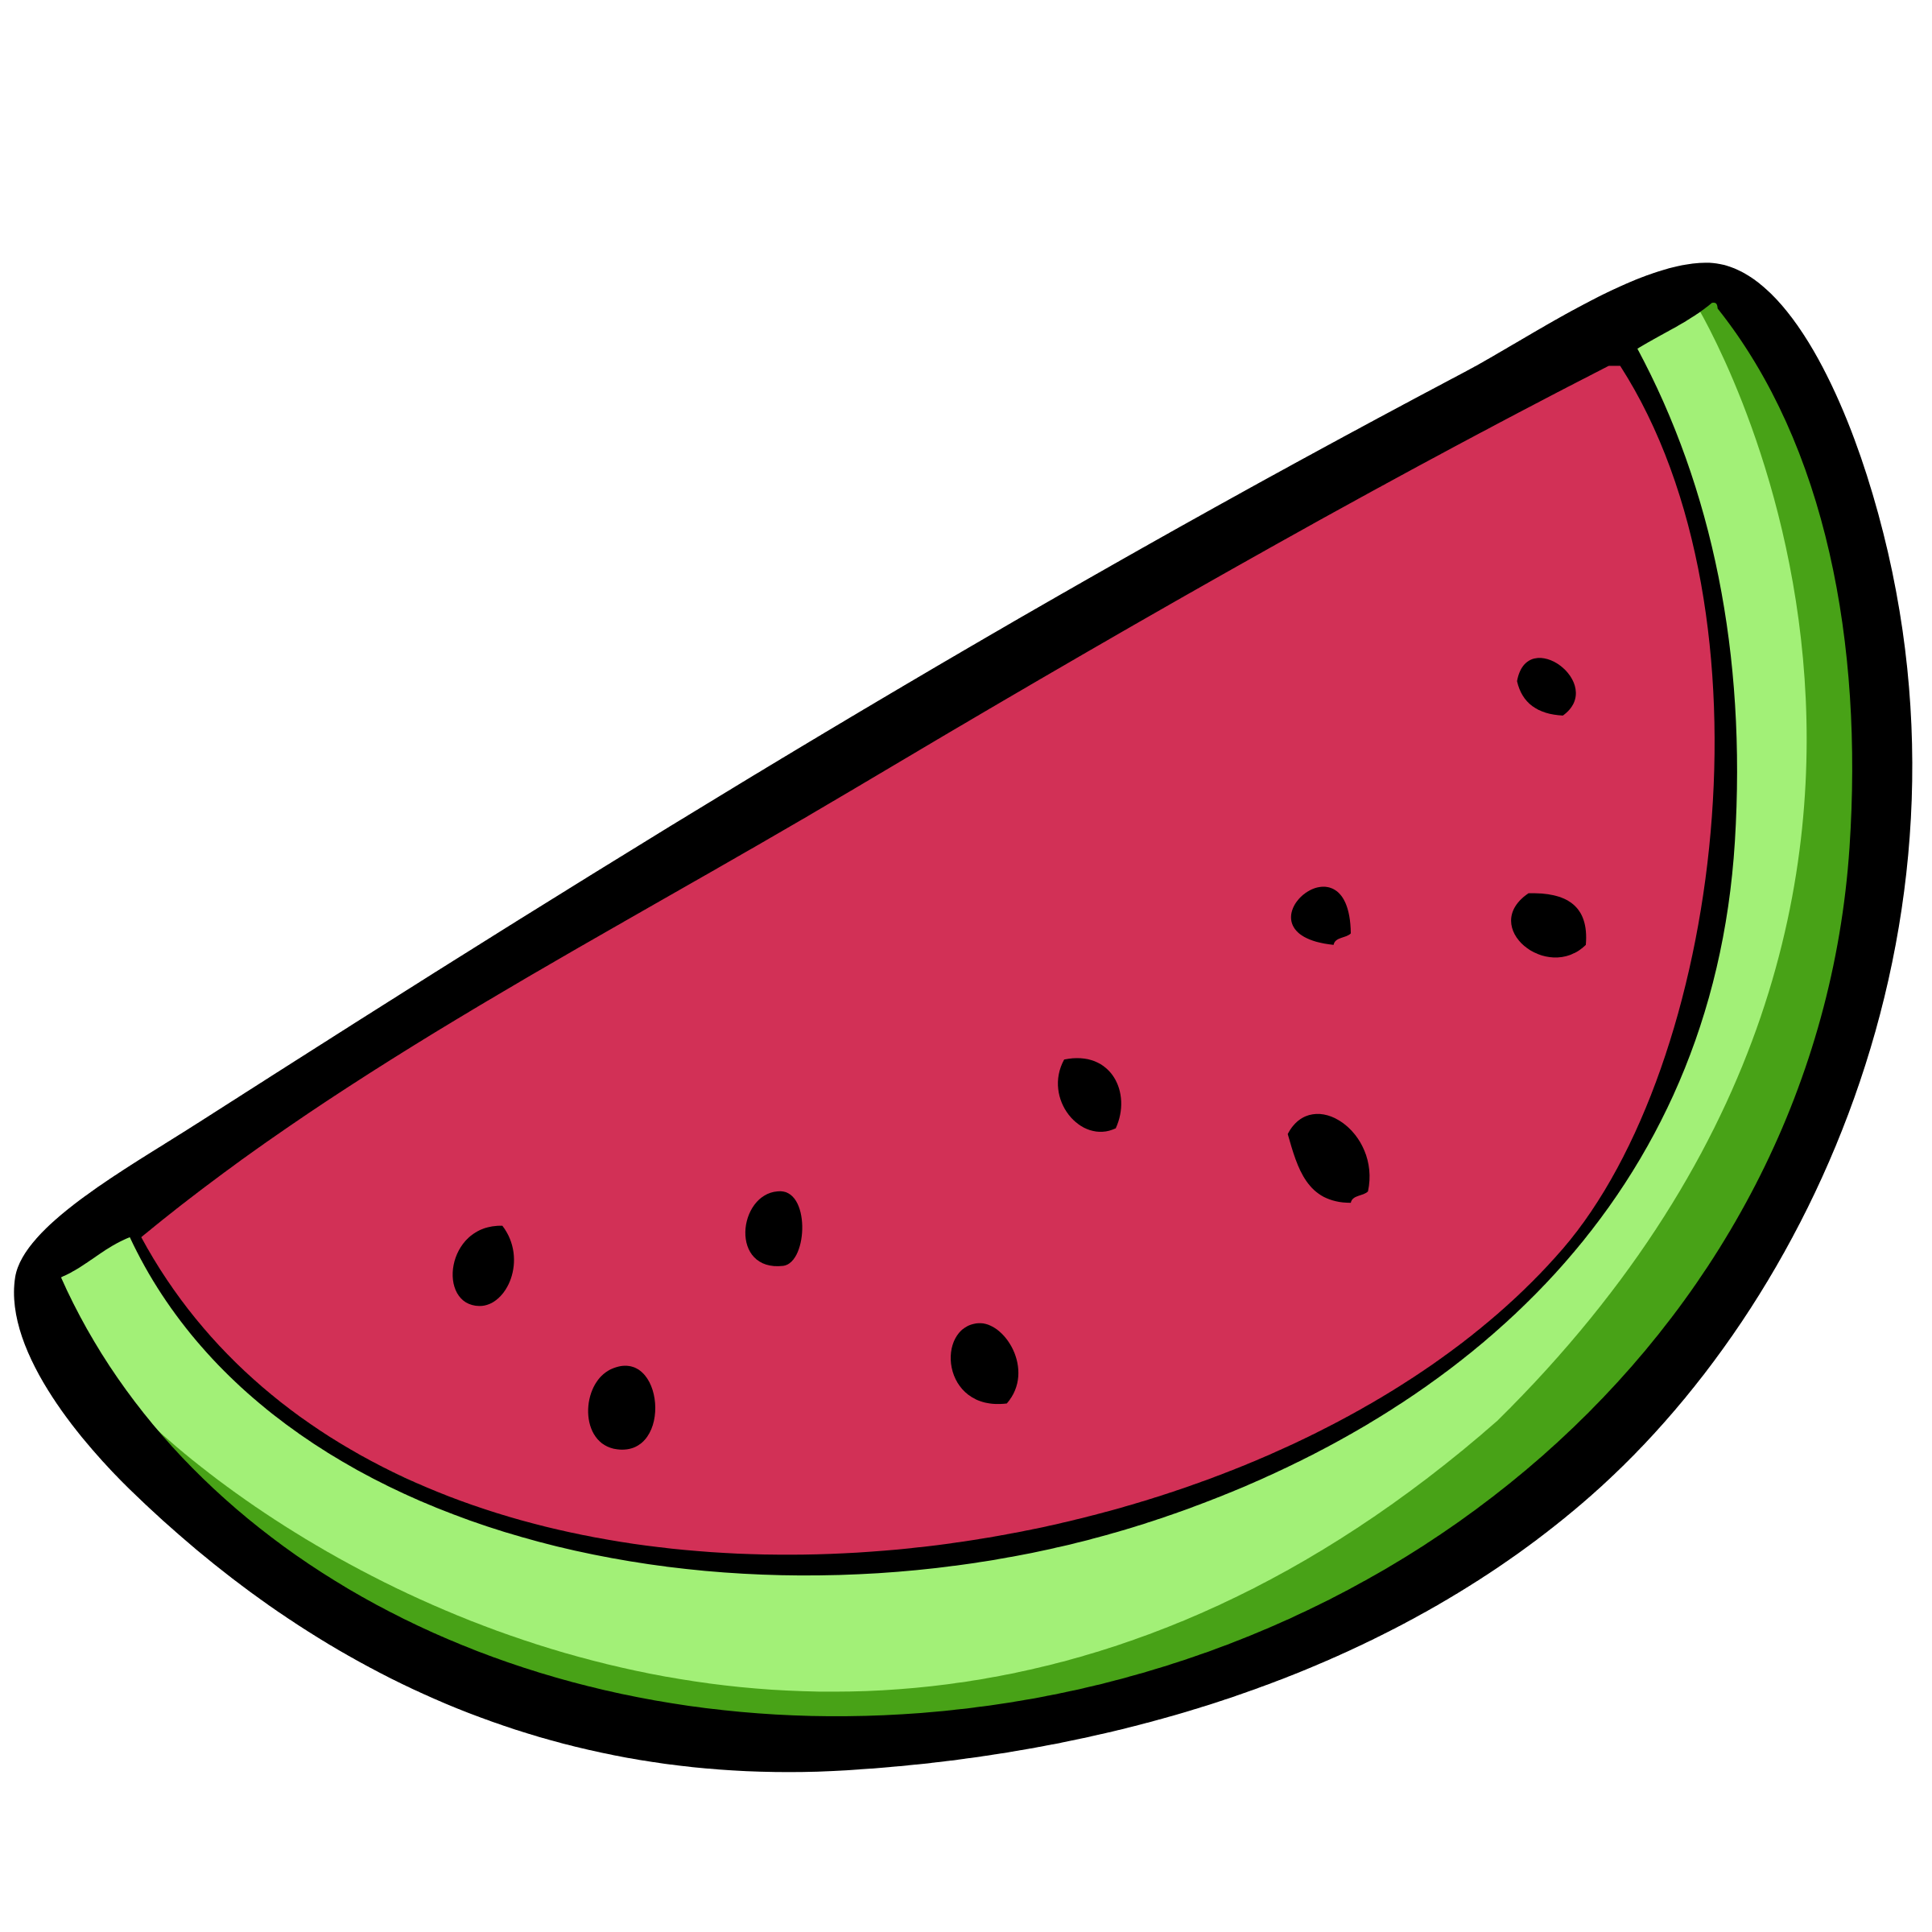 Gourd clipart animated Slice Watermelon Images Free Clipart